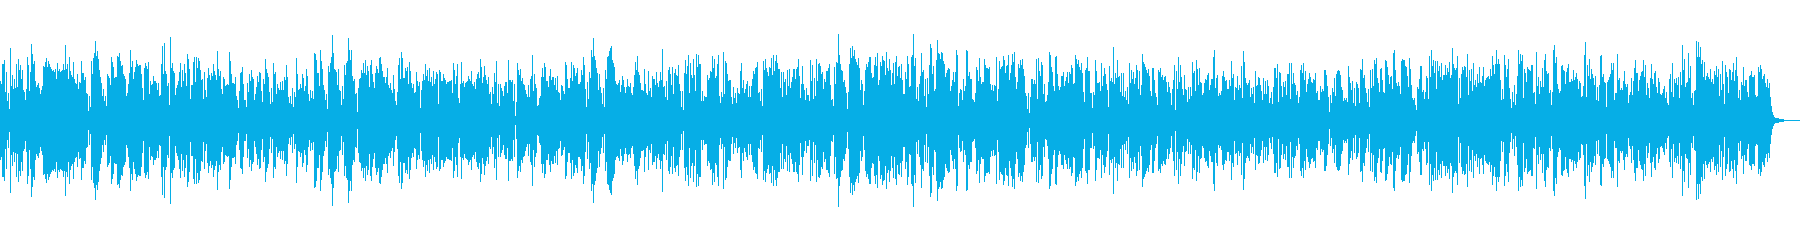 Clarinet Dixieland Jazz's reproduced waveform